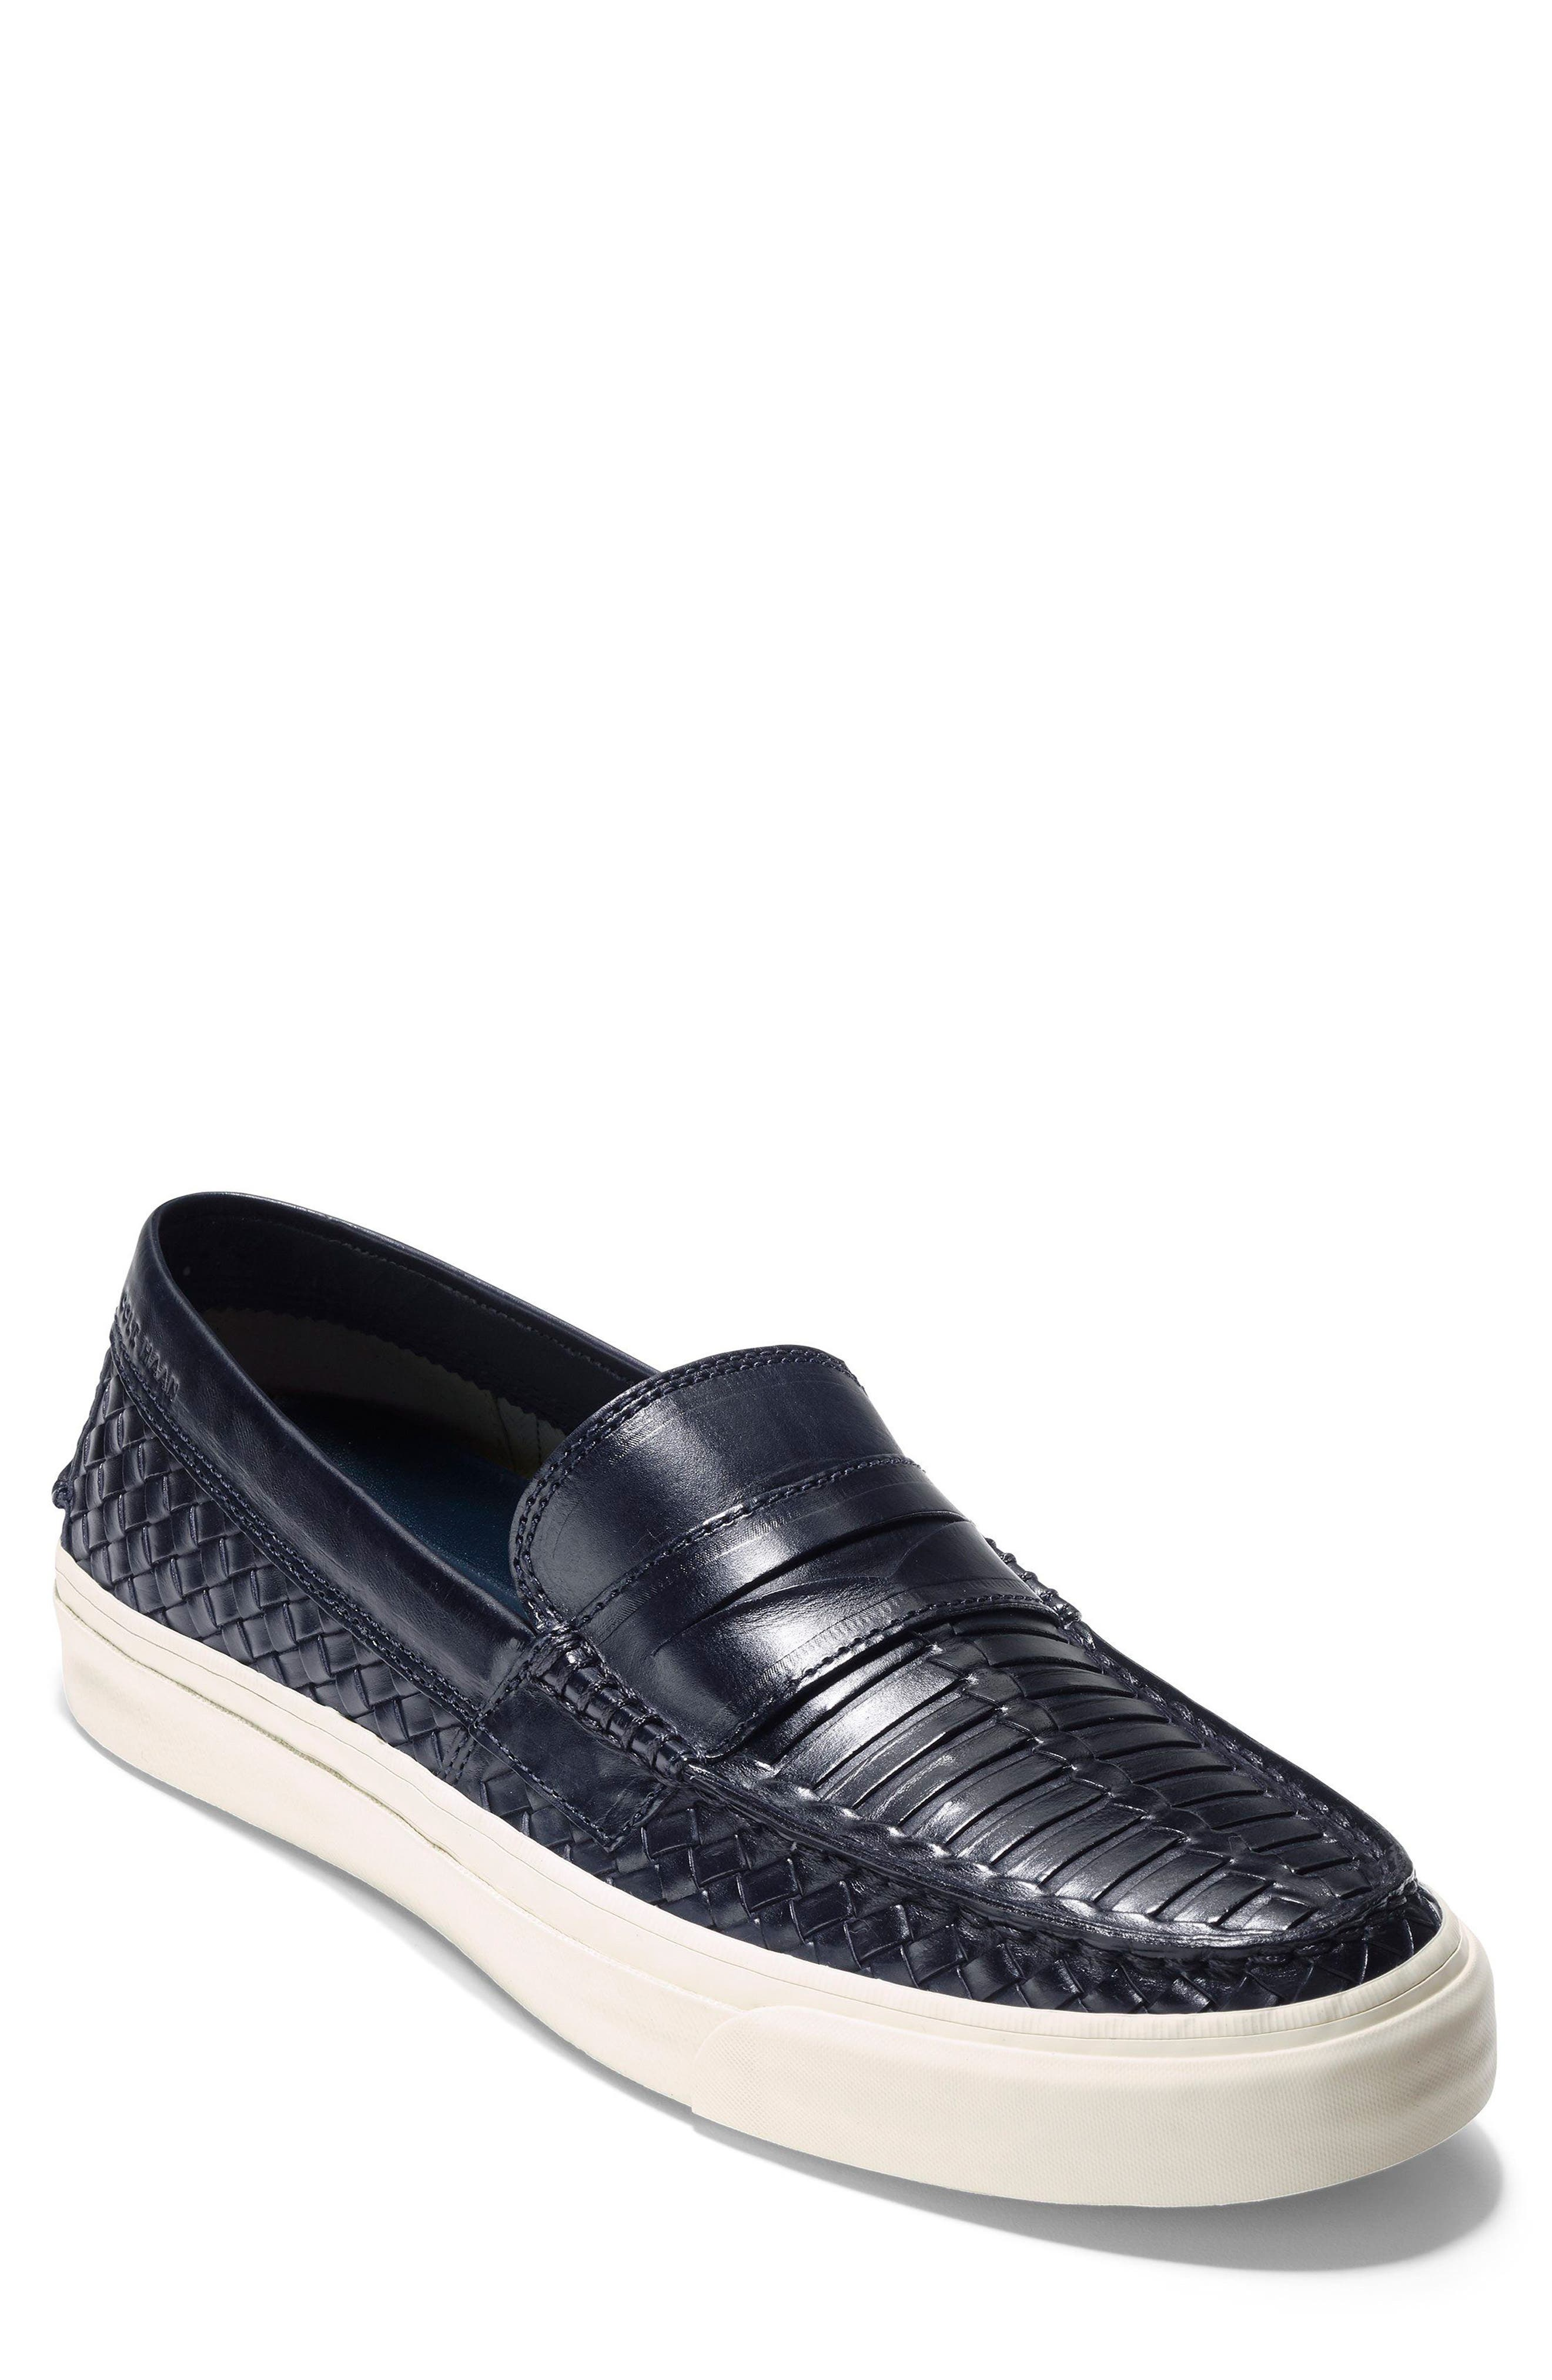 Pinch Weekend LX Huarache Loafer,                             Main thumbnail 3, color,